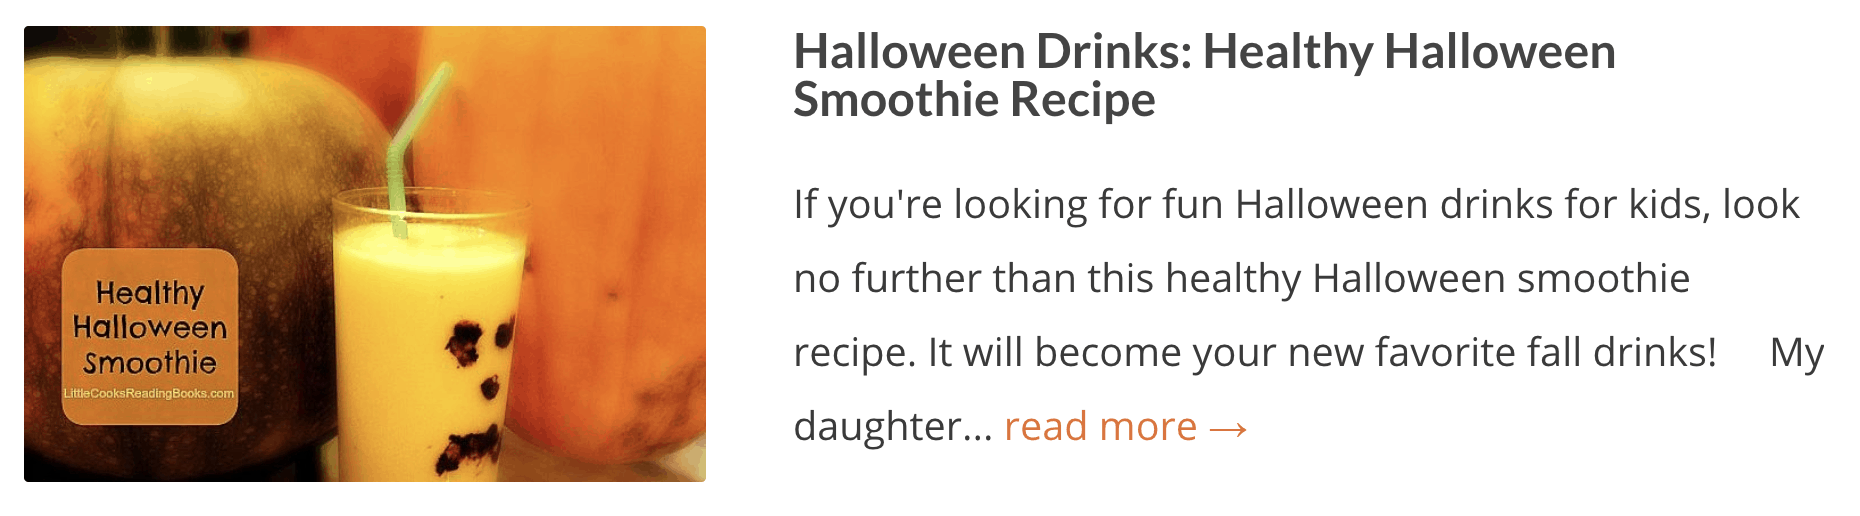 Halloween Drinks: Healthy Halloween Smoothie Recipe